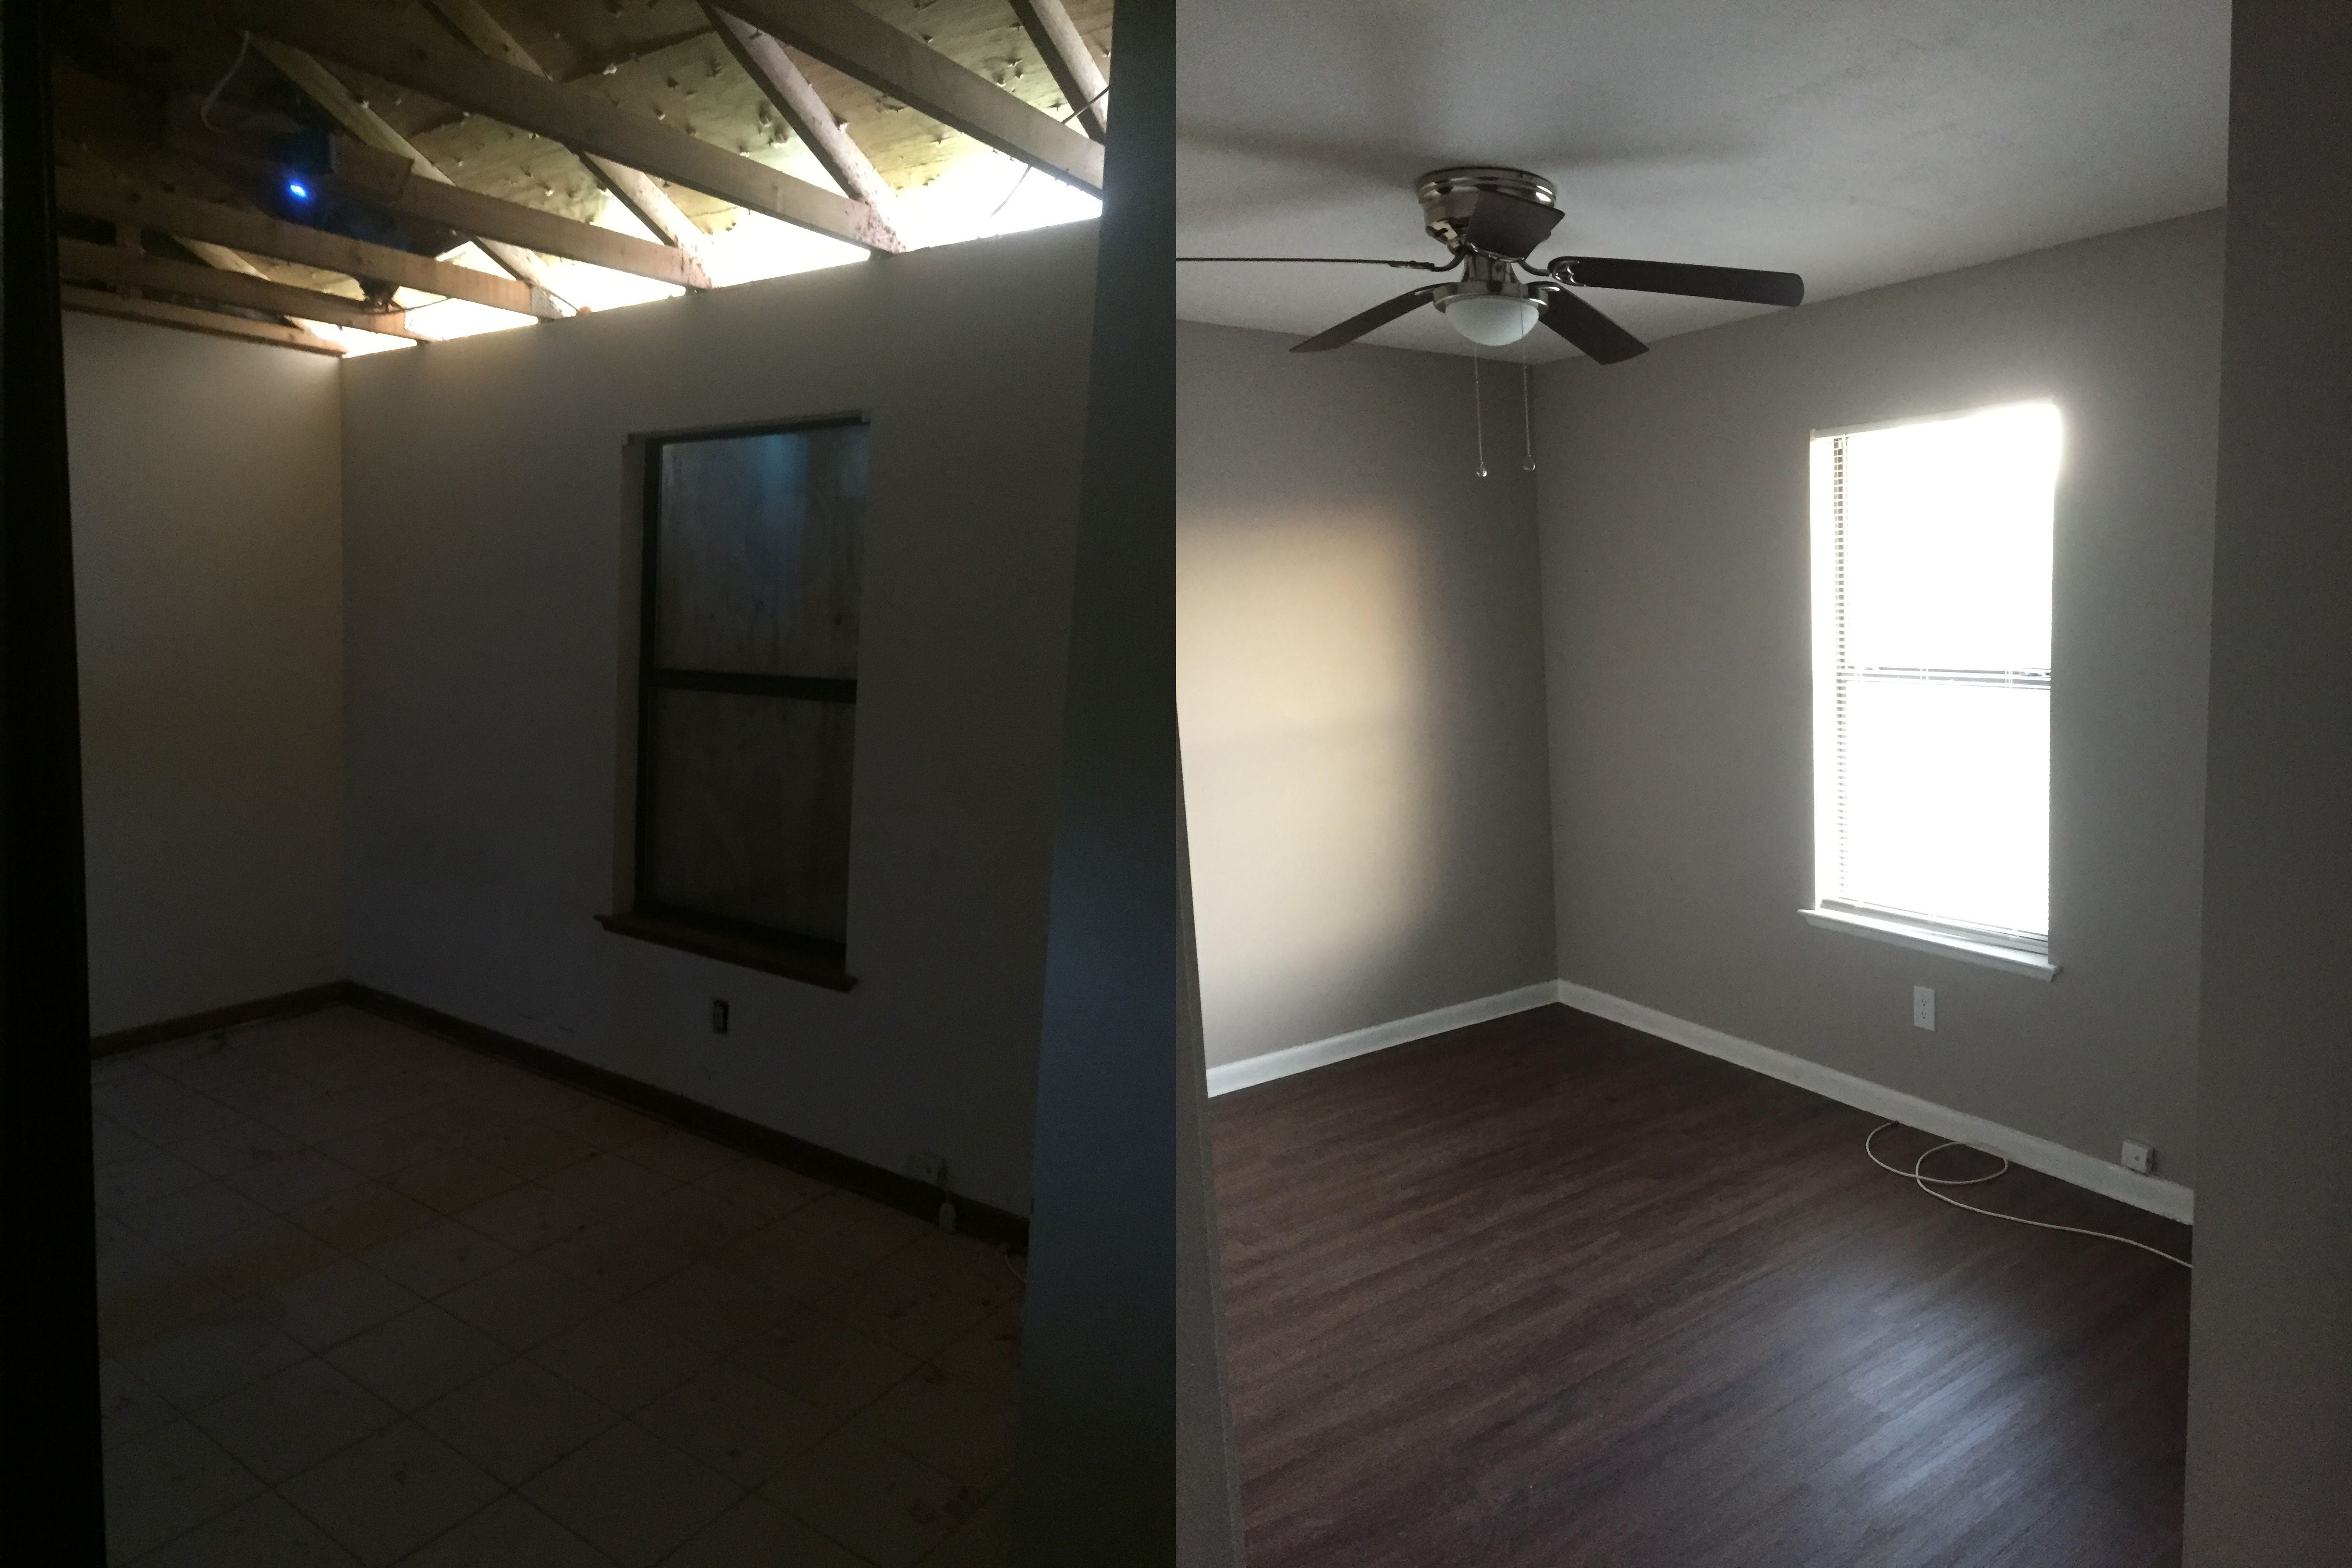 Updates Include Replaced Repaired Drywall Ceiling Which Was Then Textured And Painted New Ceiling Vent Vinyl Plank Flooring Blinds For Windows Ceiling Vents